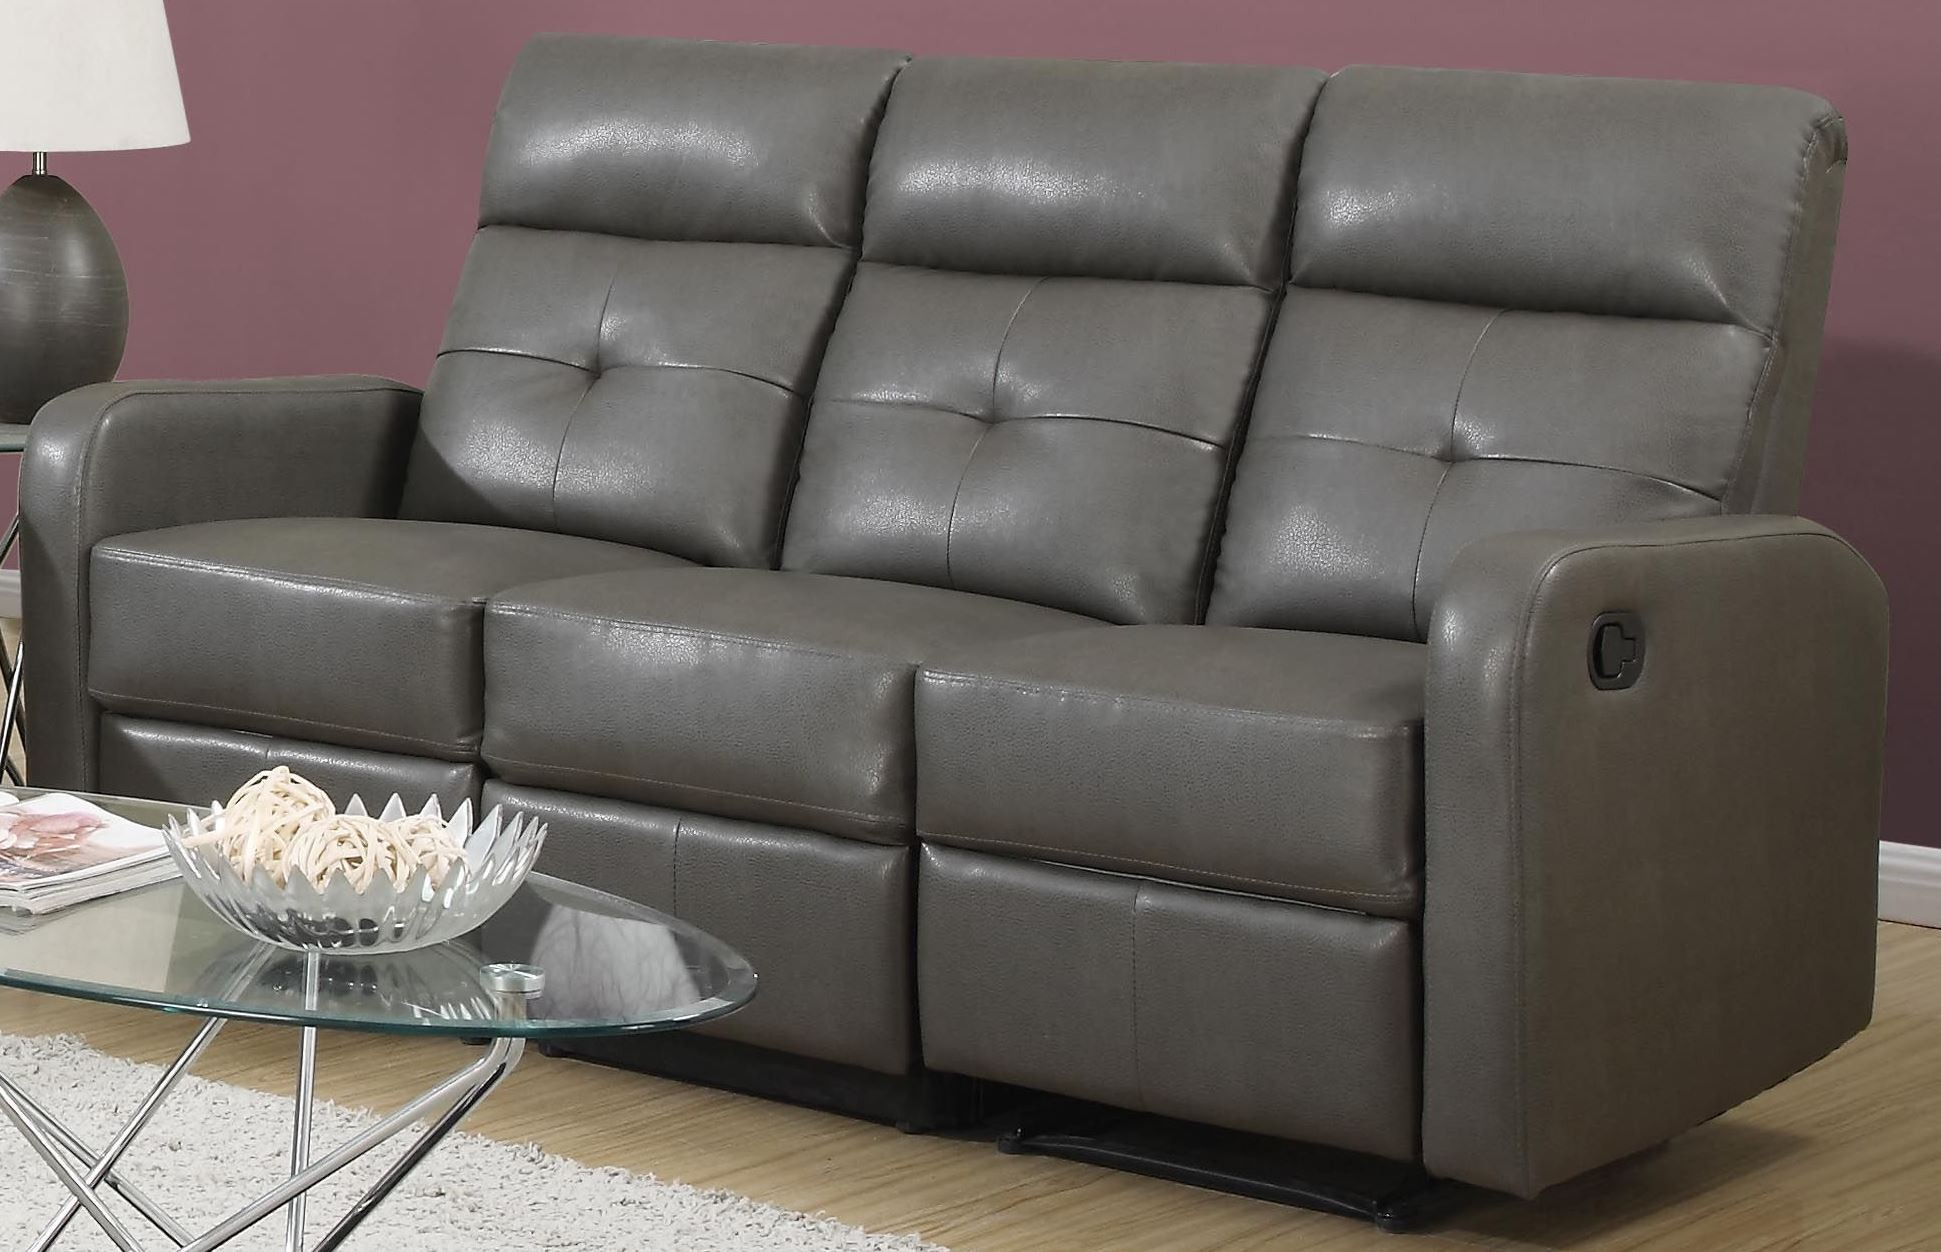 Gray Leather Sofa 85gy 3 Charcoal Grey Bonded Leather Reclining Sofa 85gy 3